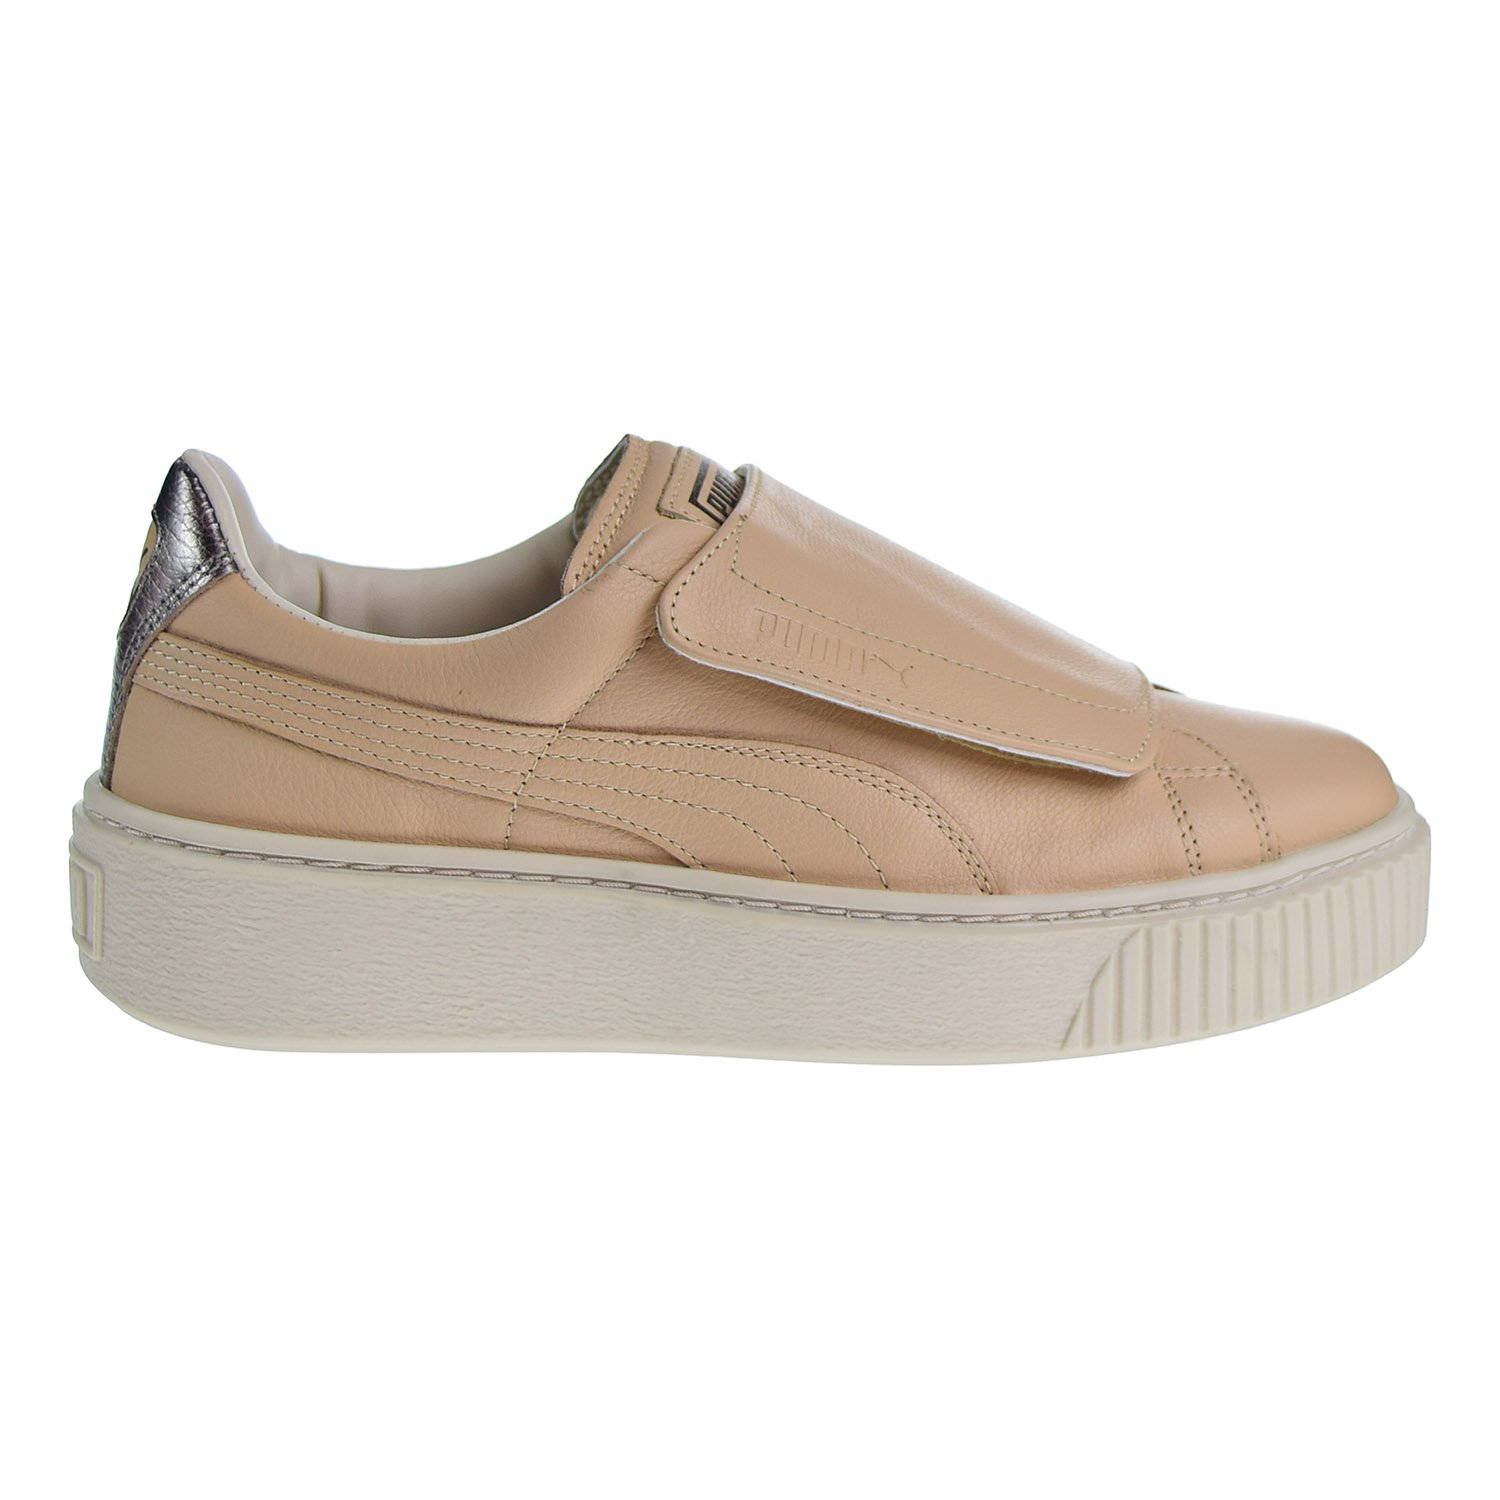 PUMA 364951-01 Women Platform Strap up Natural Vachetta B077S32S29 6.5 M US